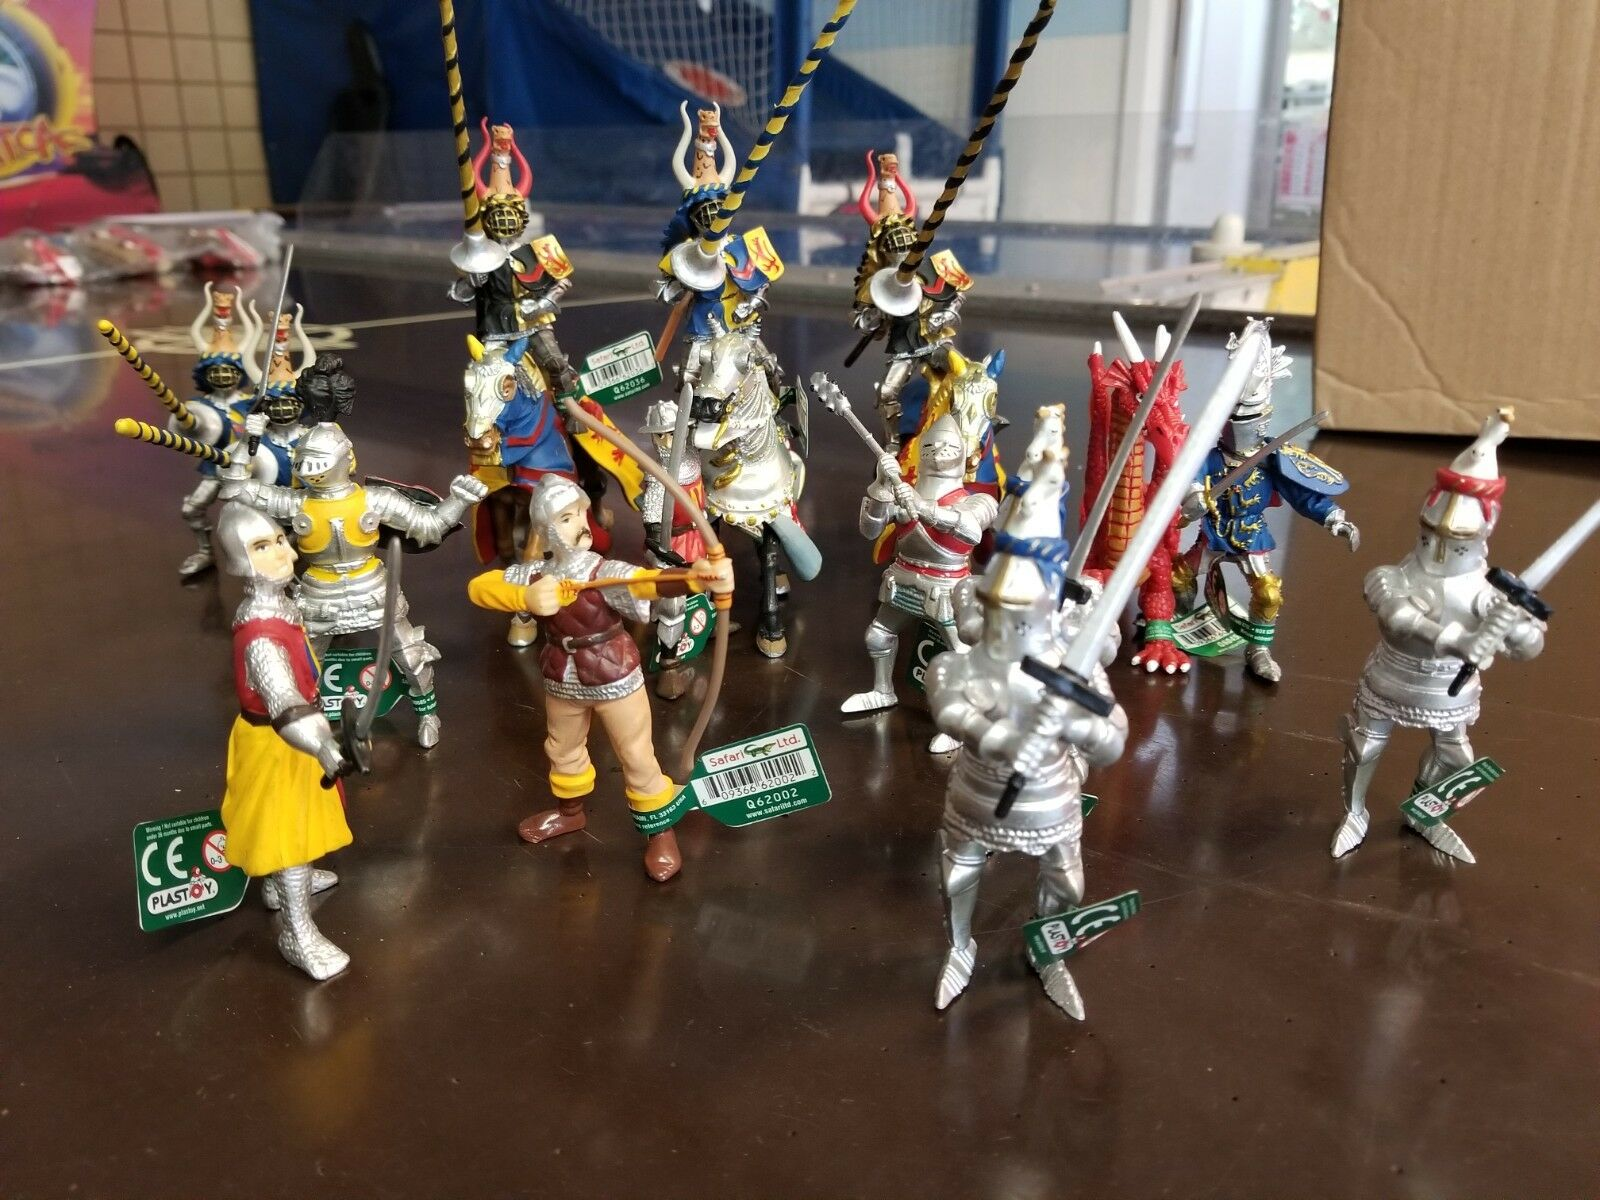 Lot of 18 MEDIEVAL  Action Figures Knights And Horses SAFARI LTD  Hand Painted